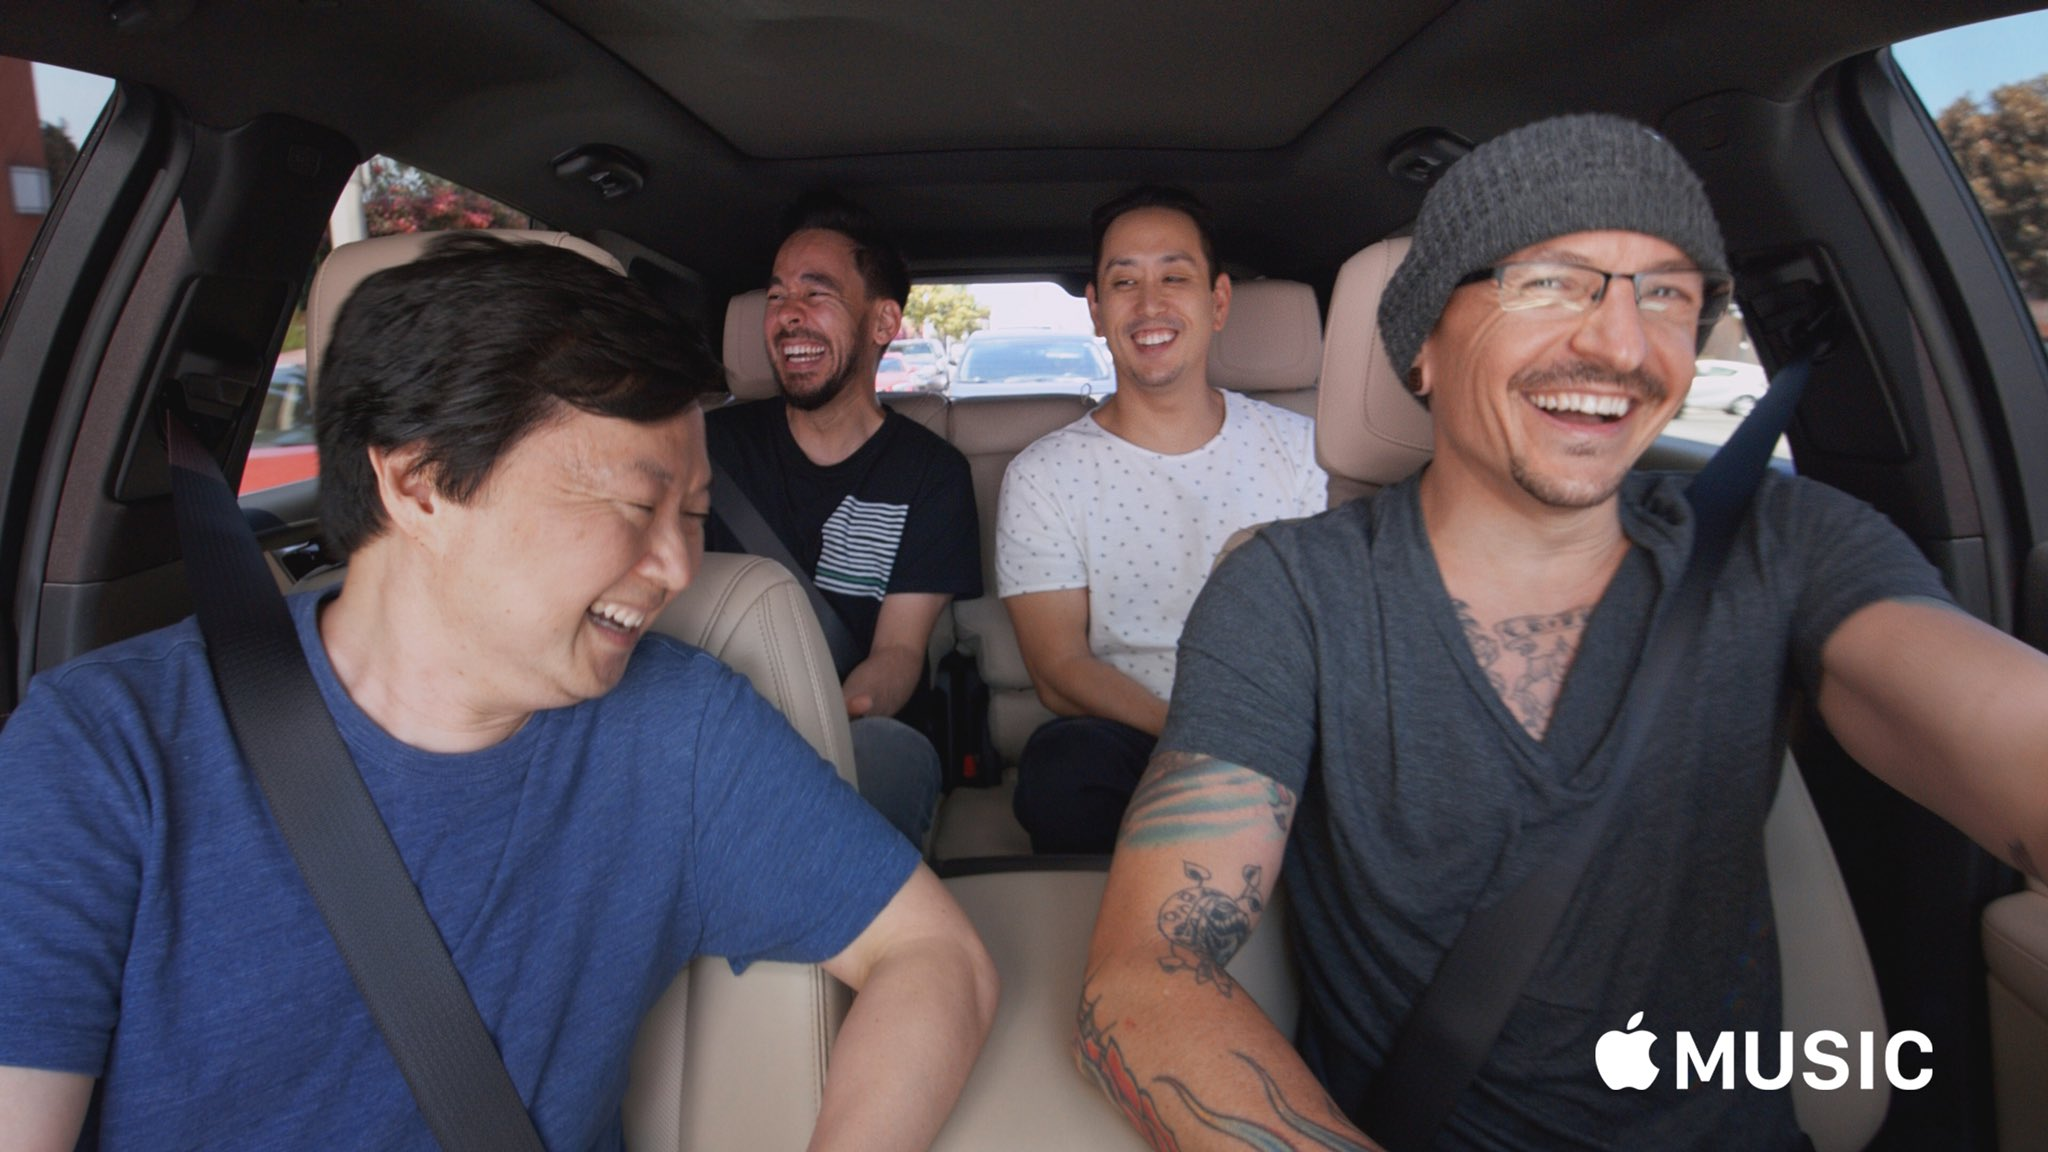 .@CarpoolKaraoke - this time next week. Streaming for free on our Facebook page: https://t.co/pCaw9HvcOD https://t.co/pXpJFnNlQI